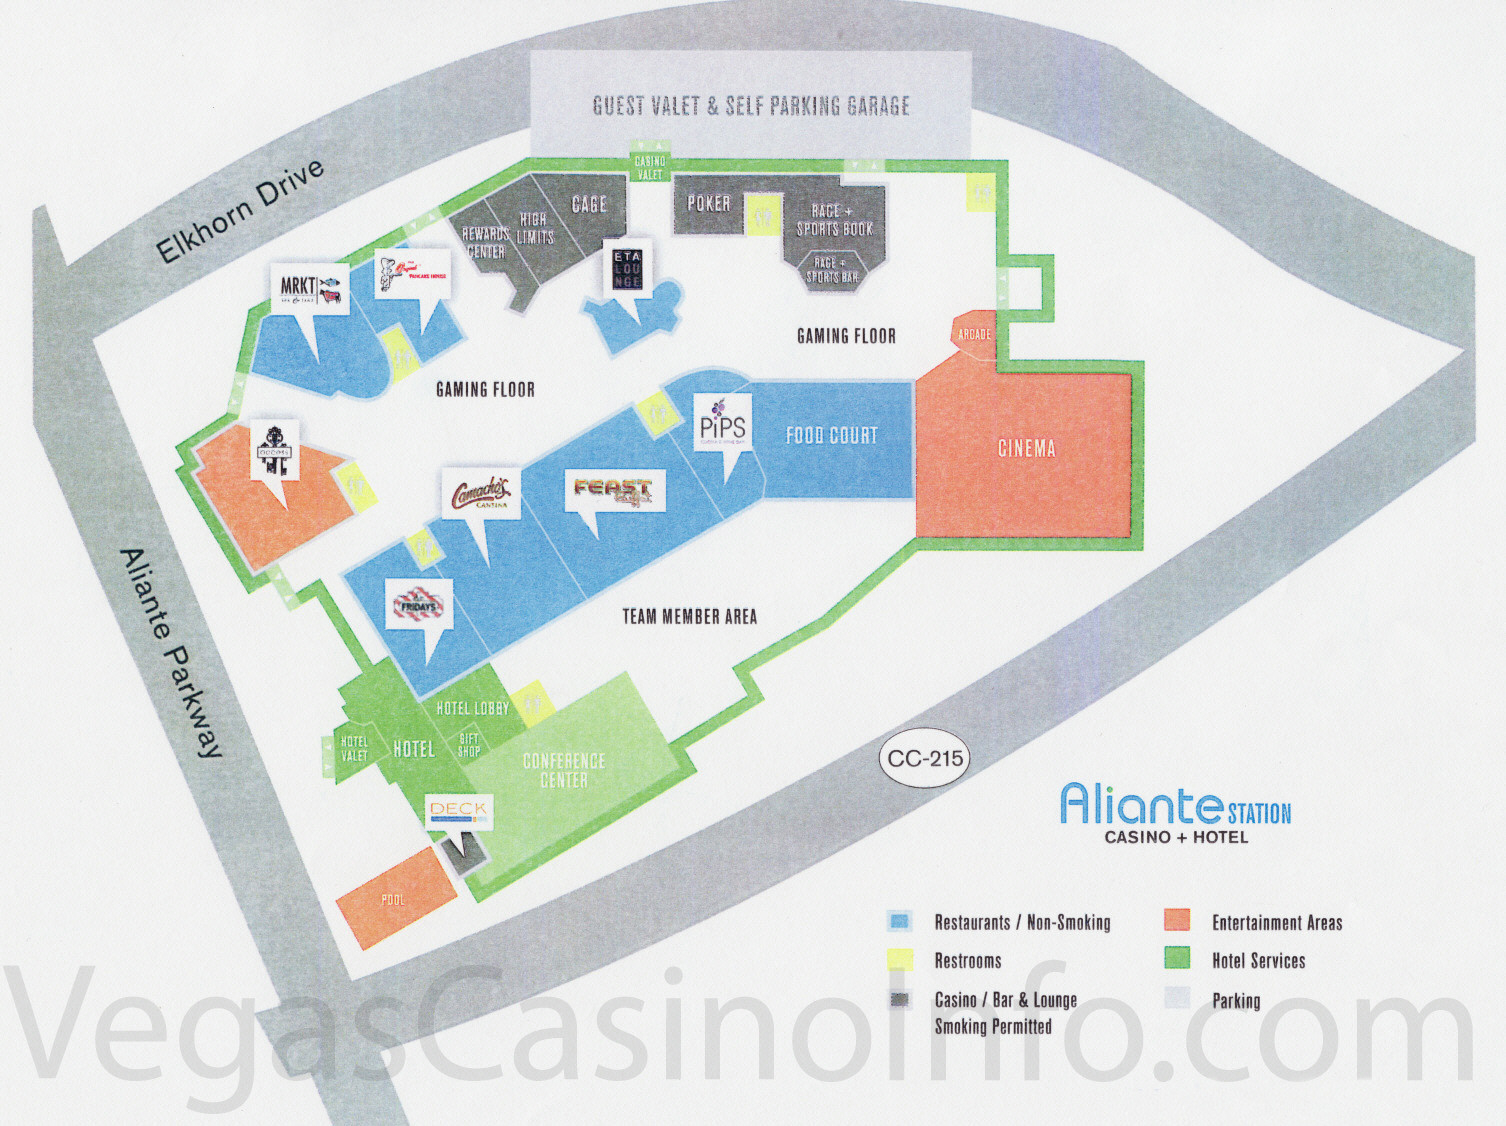 Las Vegas Casino Property Maps And Floor Plans | Vegascasinoinfo - Casinos In Texas Map